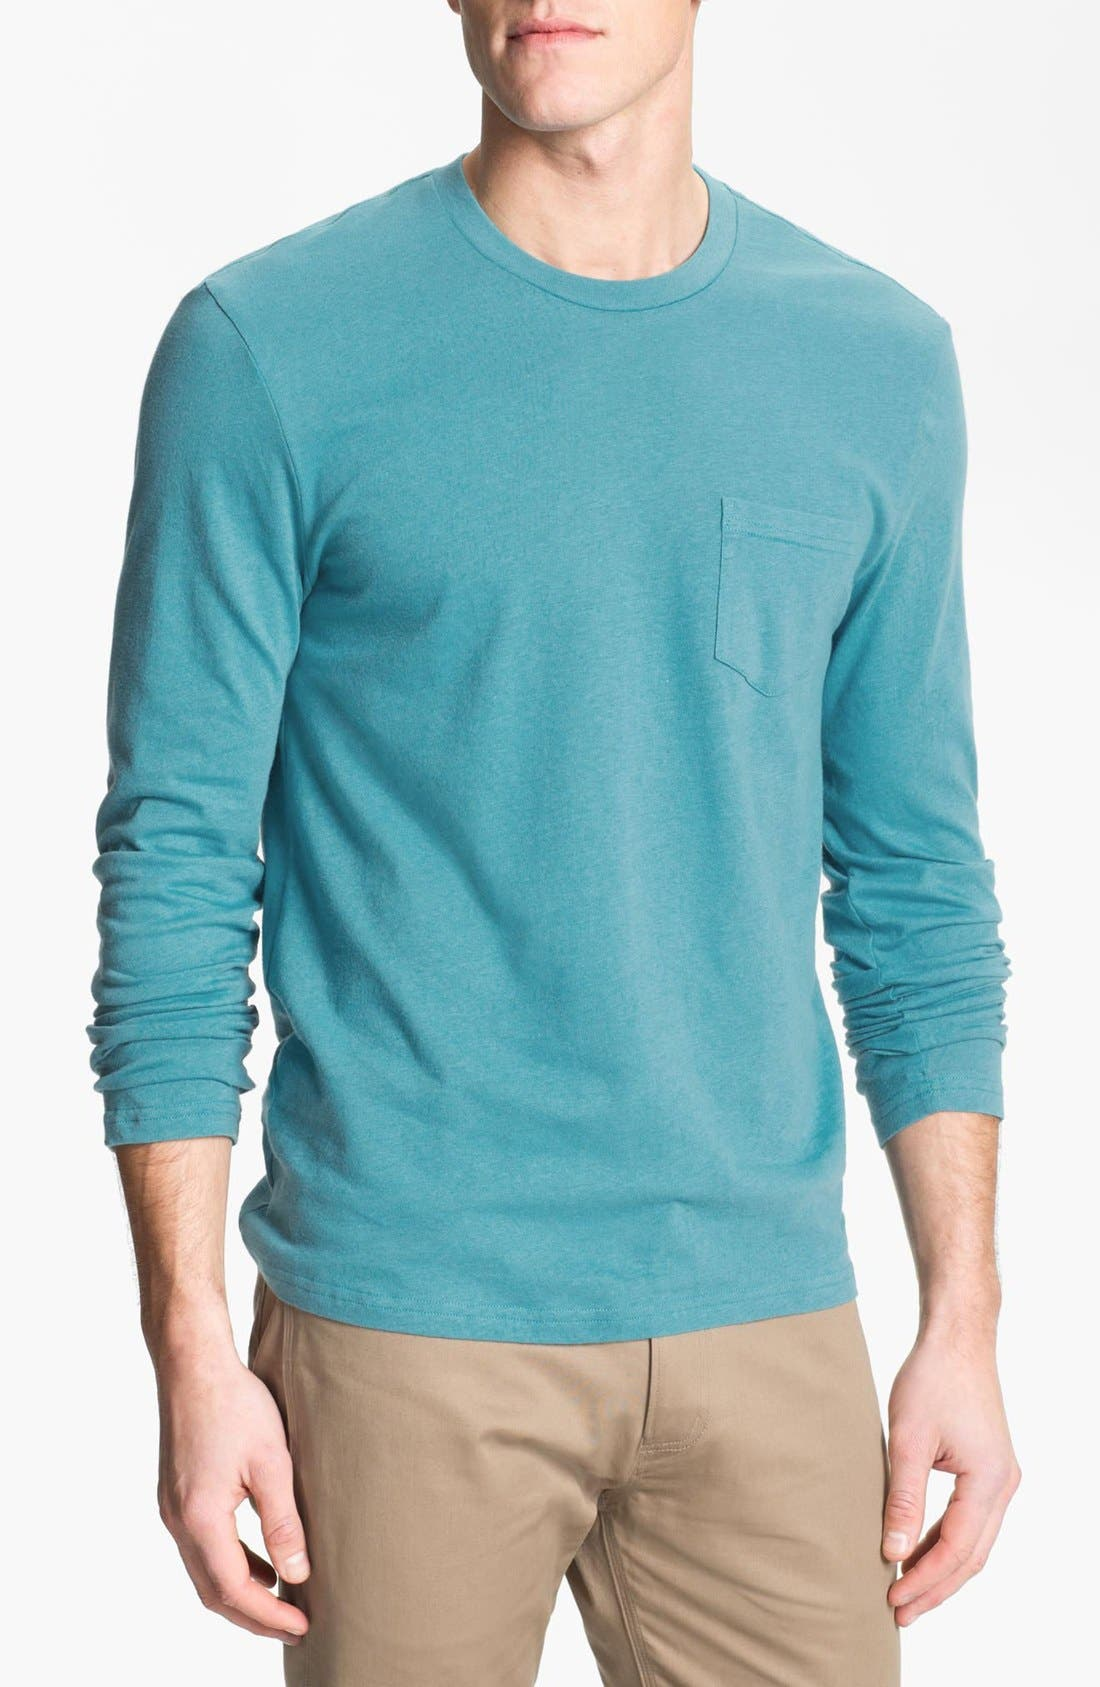 Main Image - The Rail Long Sleeve Pocket T-Shirt